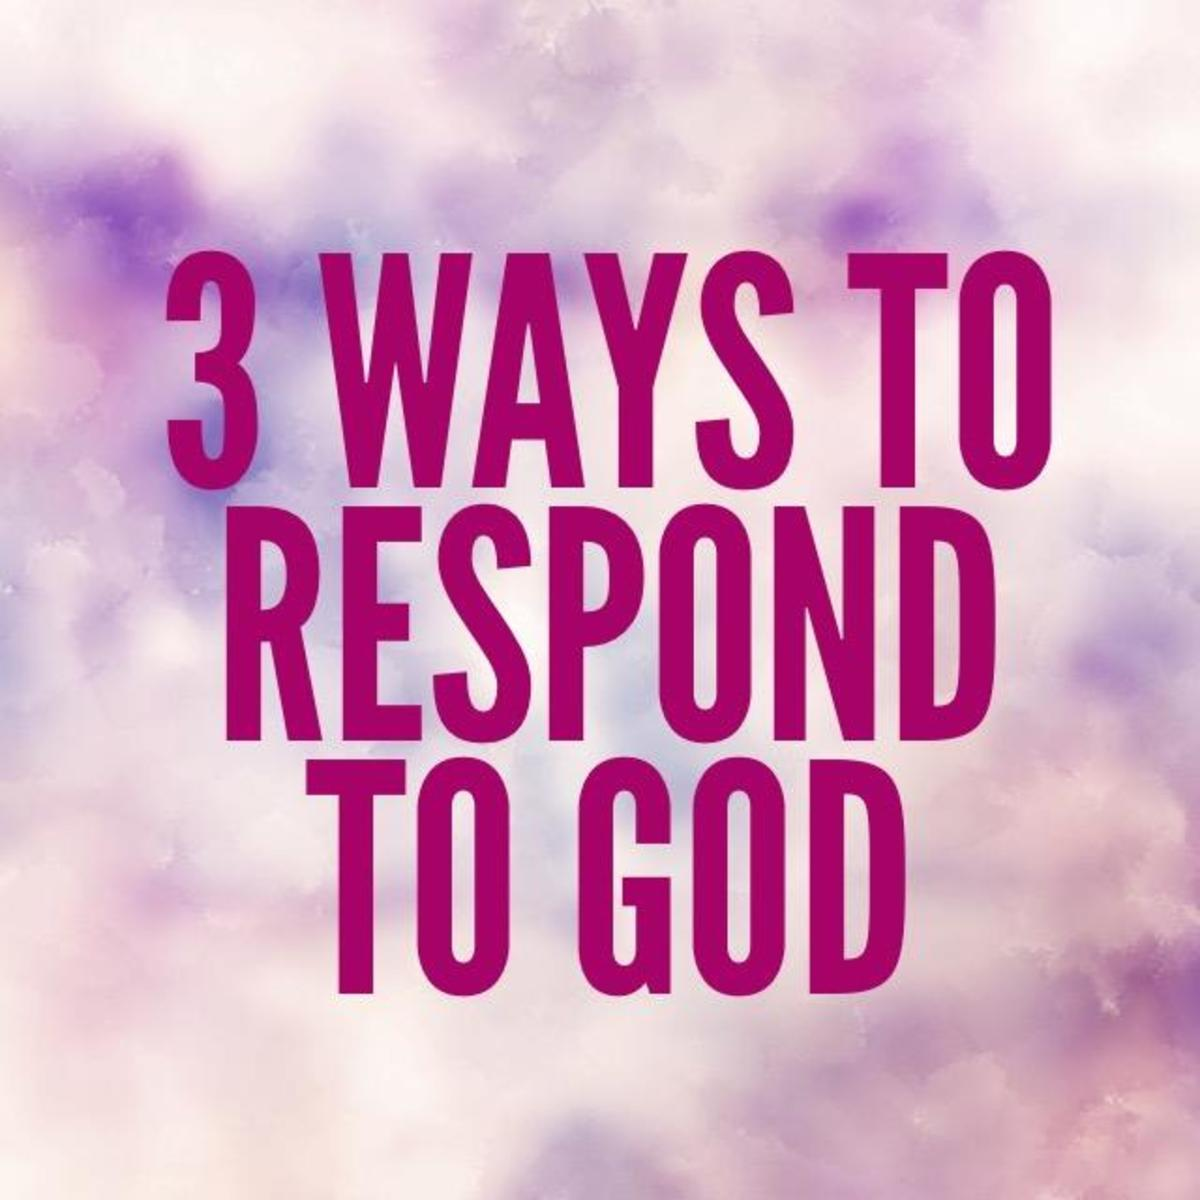 How We Should Respond to God